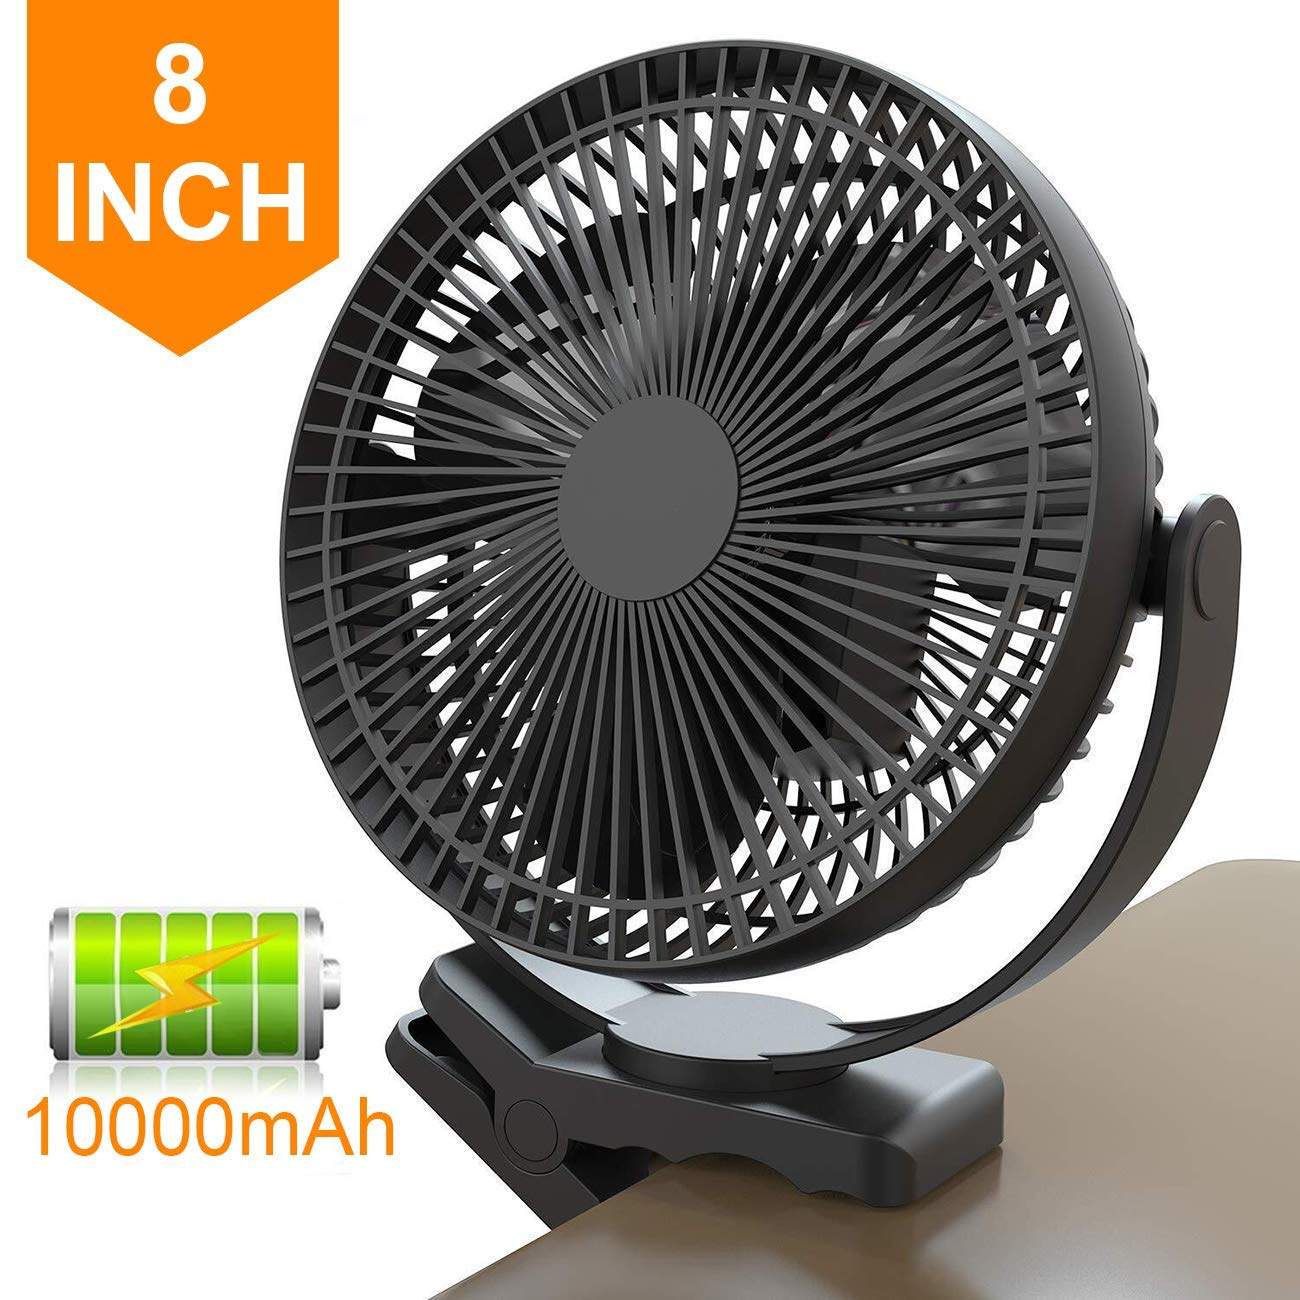 8 Inch Battery Operated Clip on Fan, 10000mAh Rechargeable Fan for Baby, 4 Speeds & 10W Fast Charging, Portable Cooling USB Fan for Baby Stroller Golf Cart Car Gym Treadmill,2 in 1 Desk&Clip Fan-Black by Gazeled